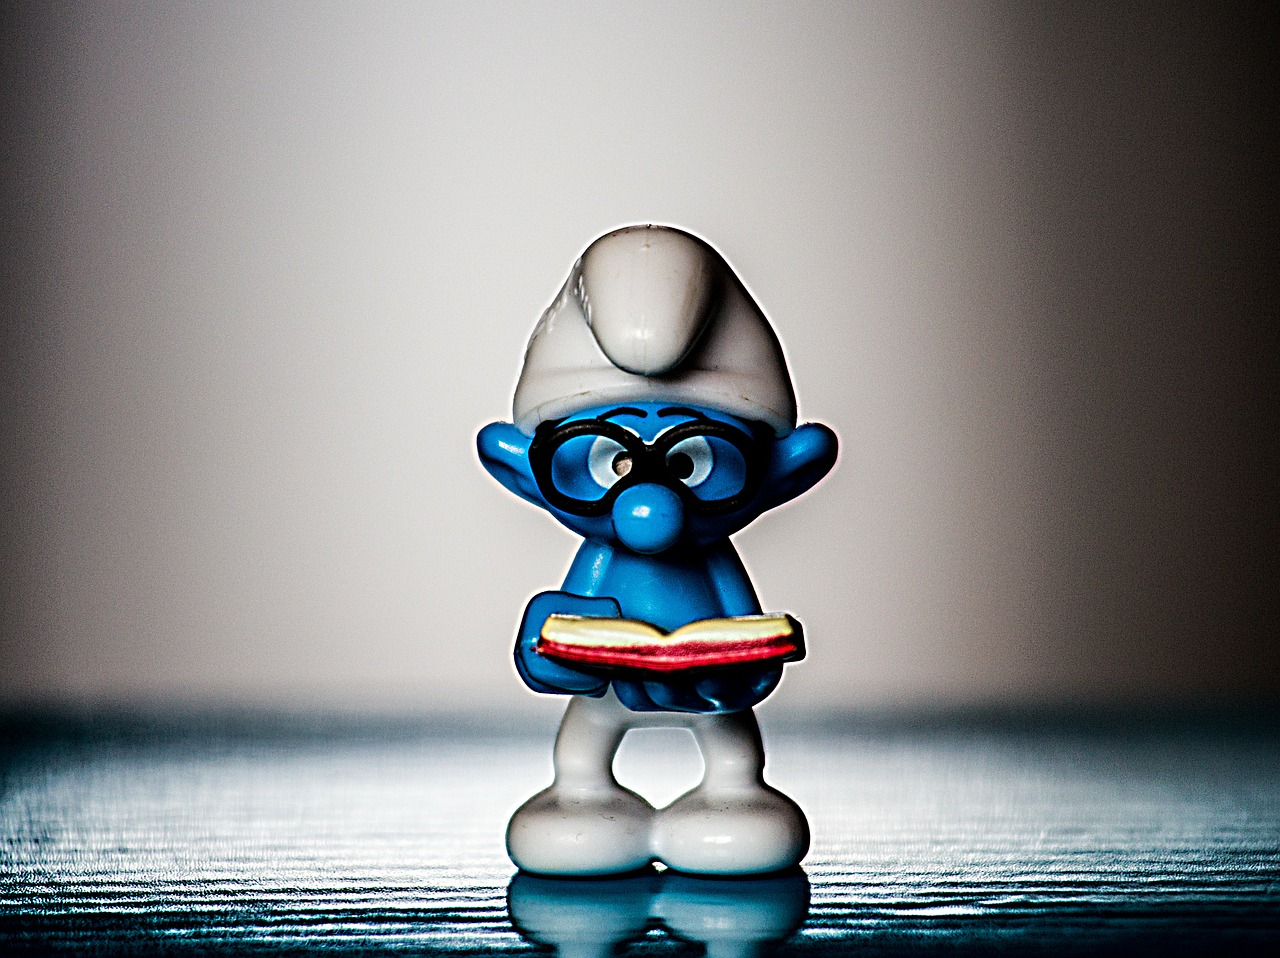 smurf read collect free photo